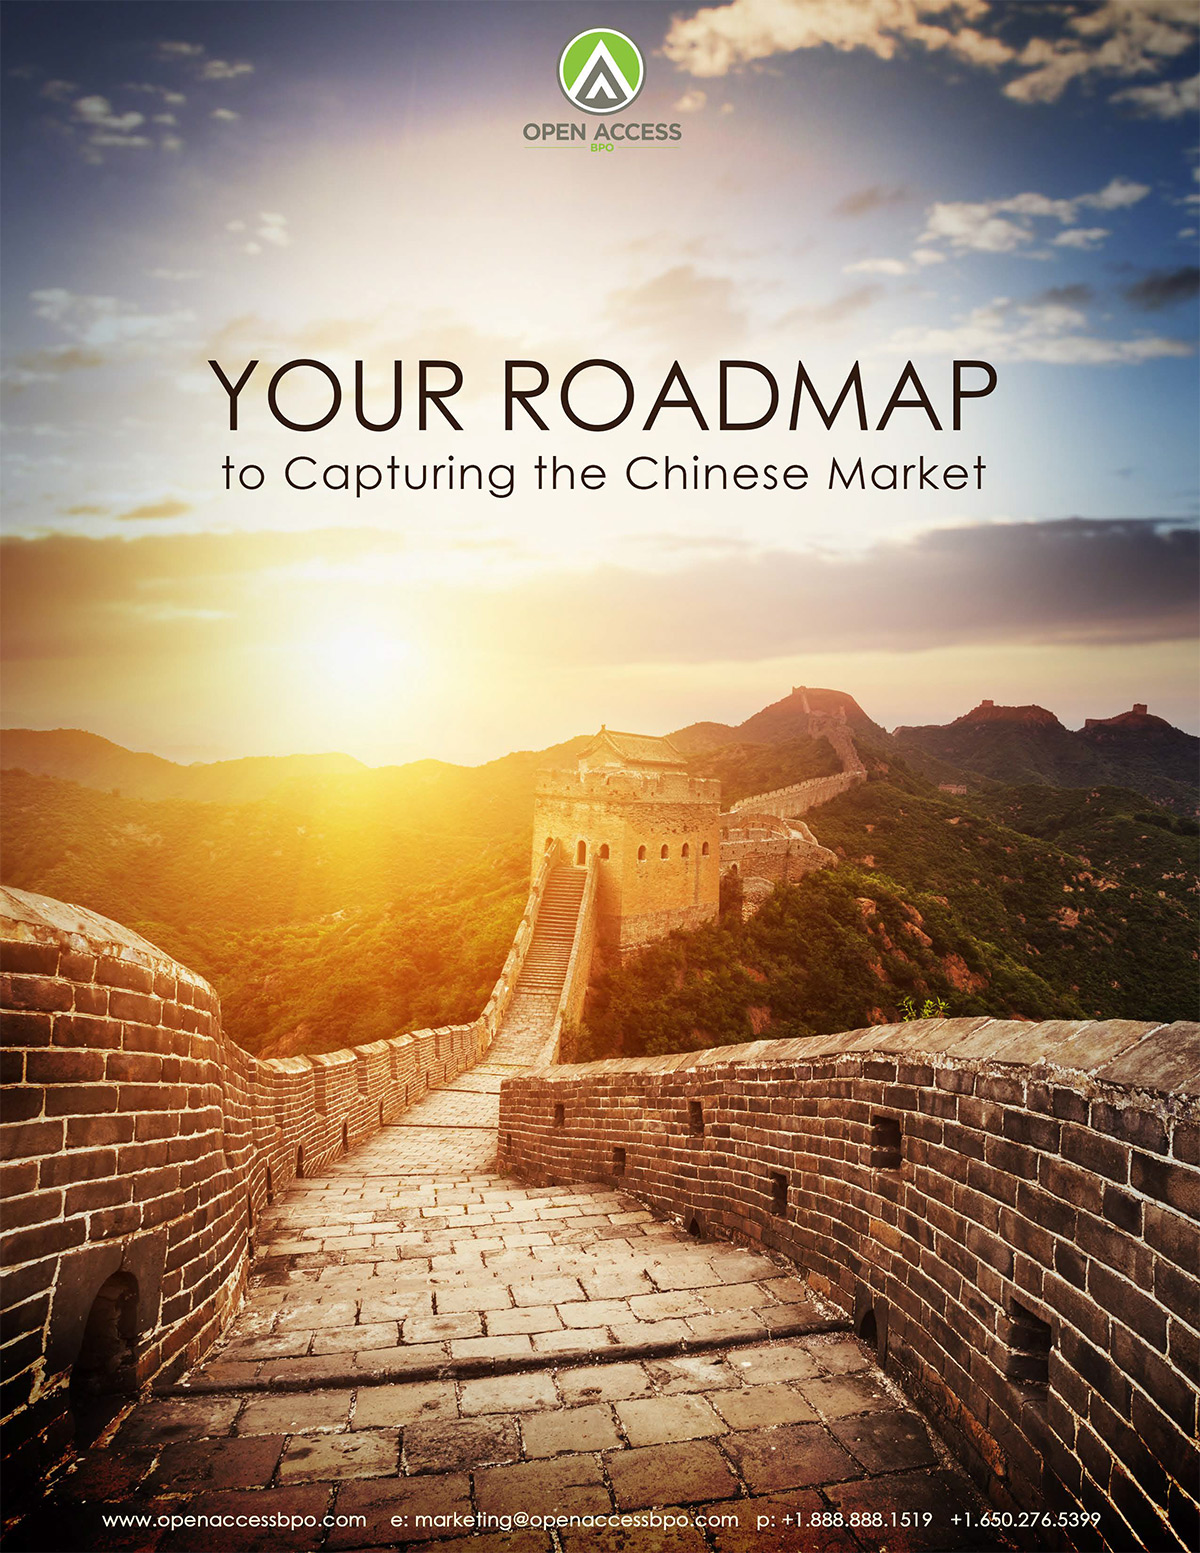 Your Roadmap to Capturing the Chinese Market